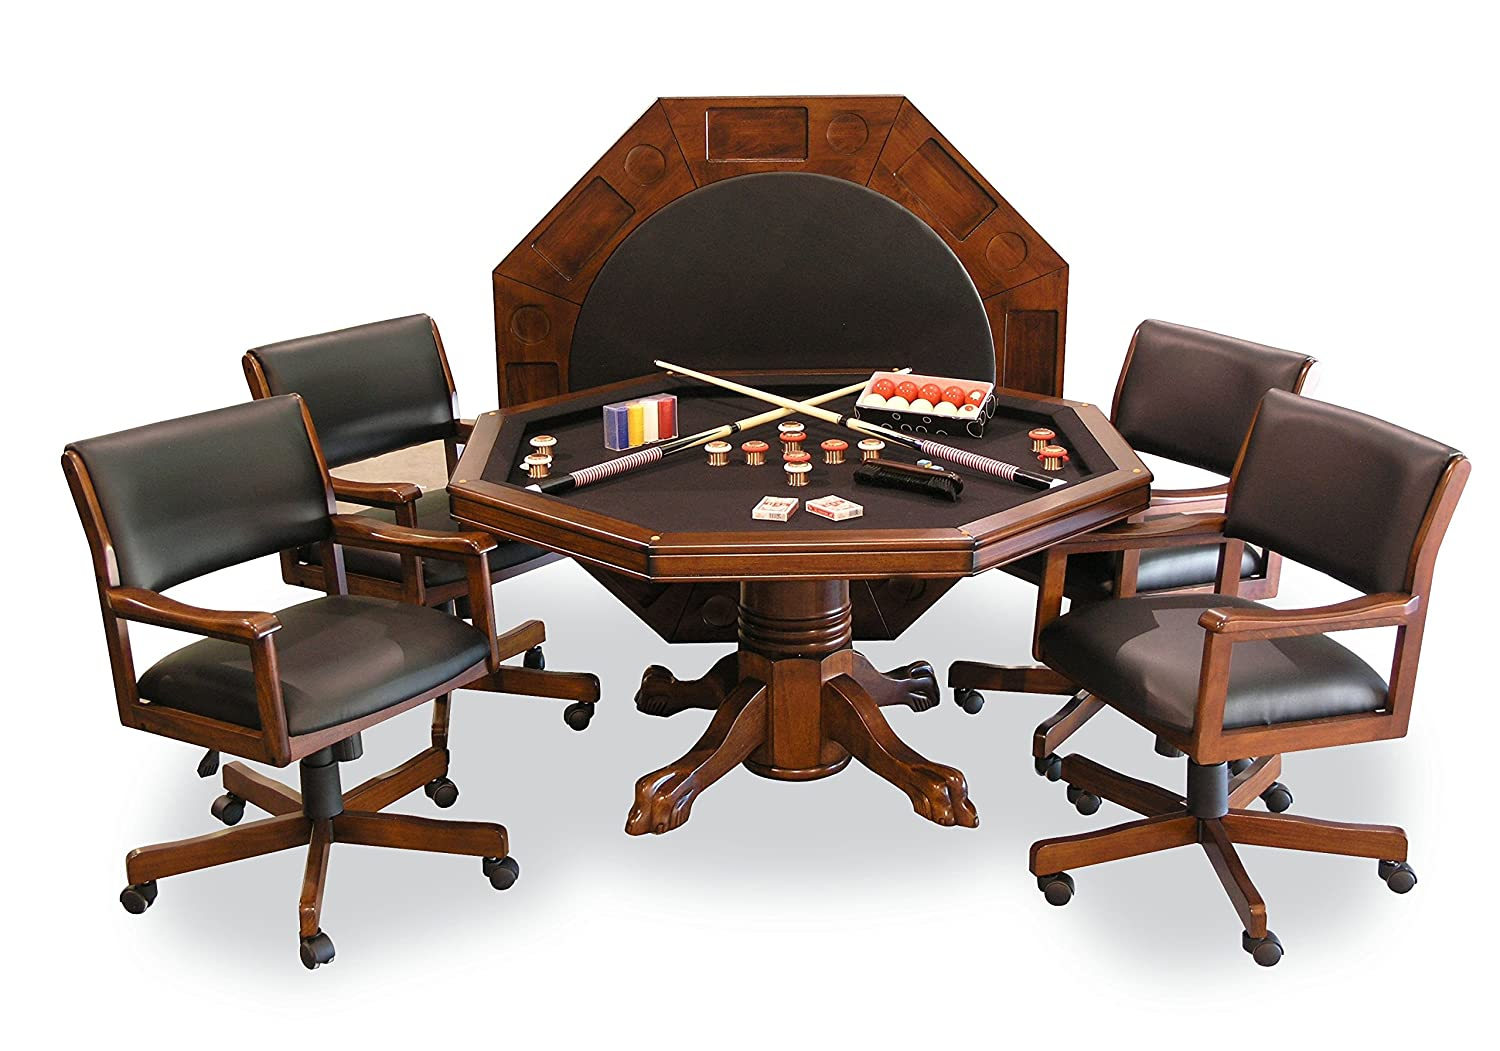 54 3-in-1 Combination Game Dining Table Set with 4 Rocker-Swivel Chairs Chestnut Finish